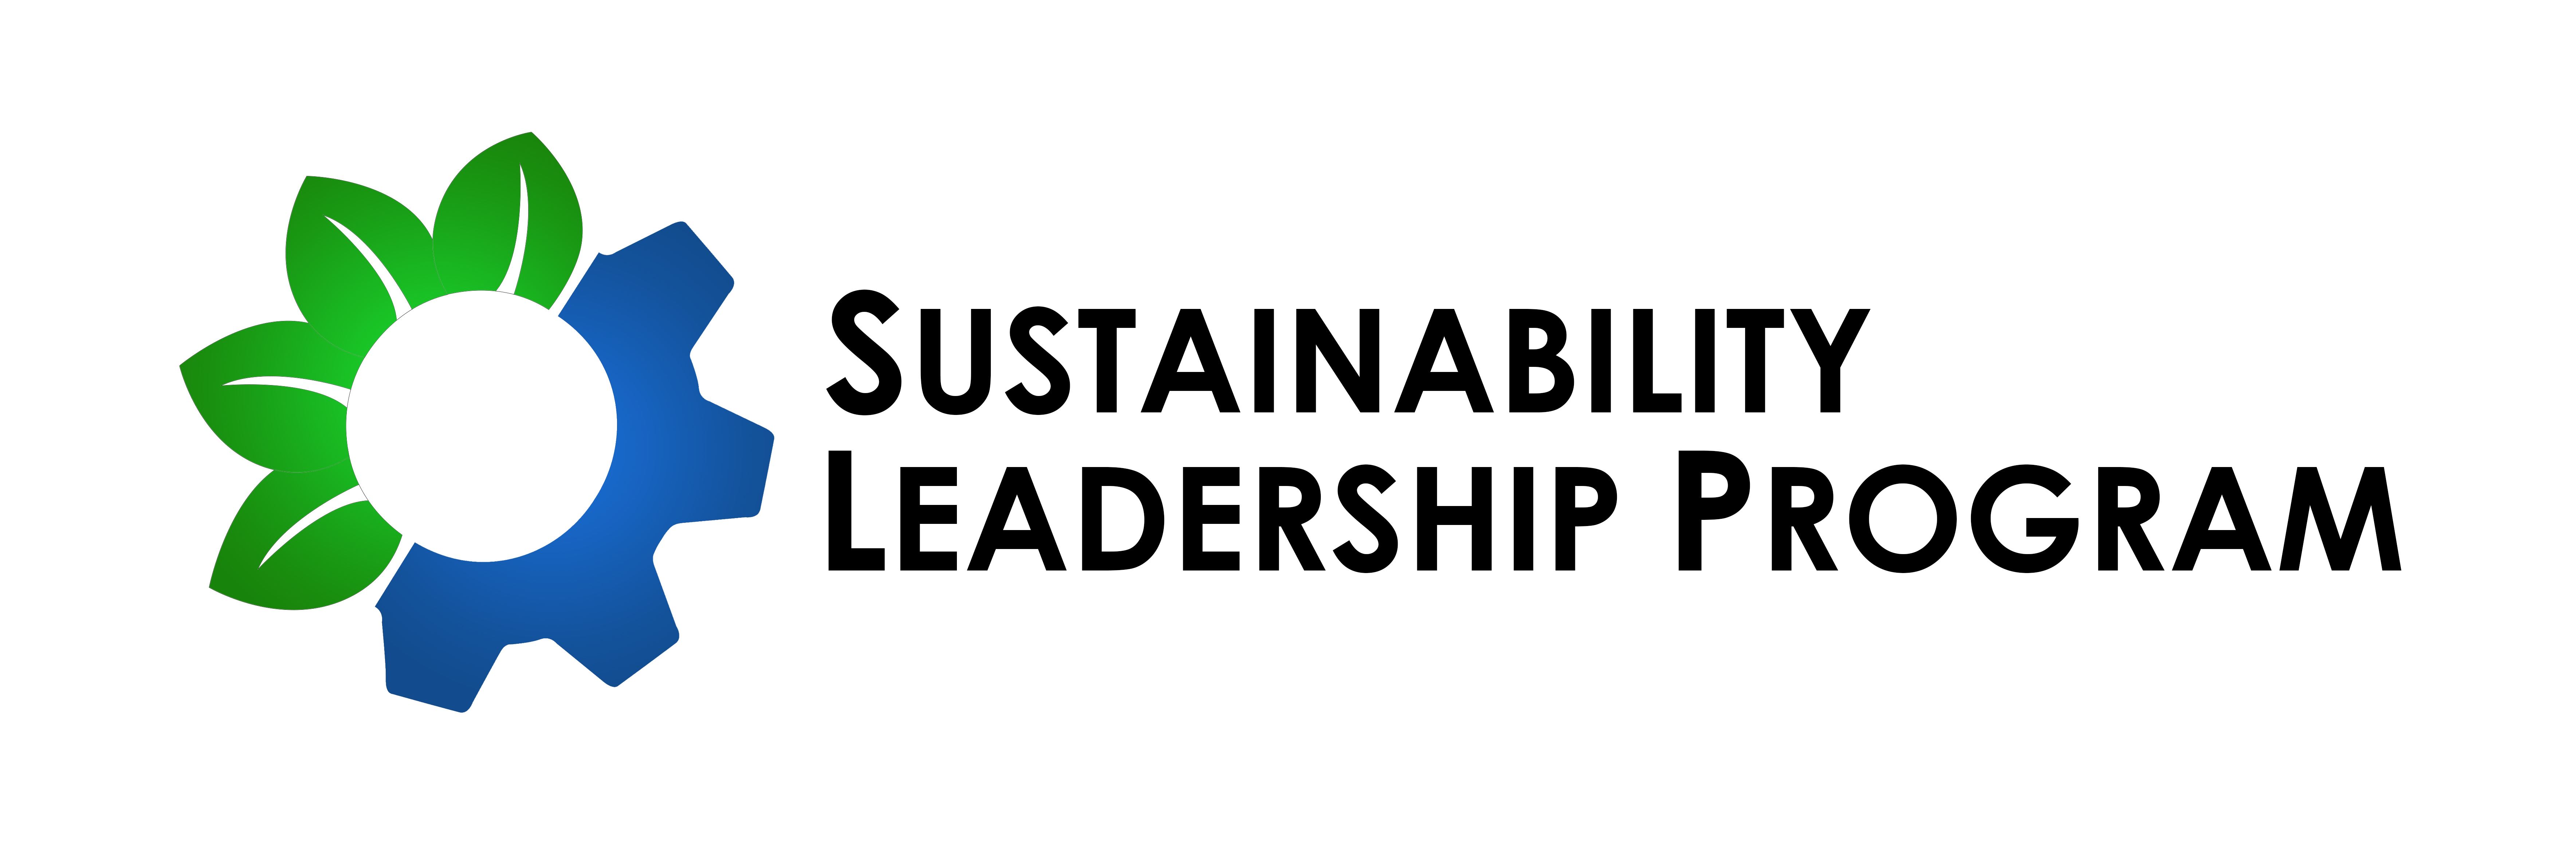 sustainable leadership Building a better world starts with sustainable leadership taking part in the young global pioneers program was a life-changing opportunity – it empowered me to make a difference and inspire others.